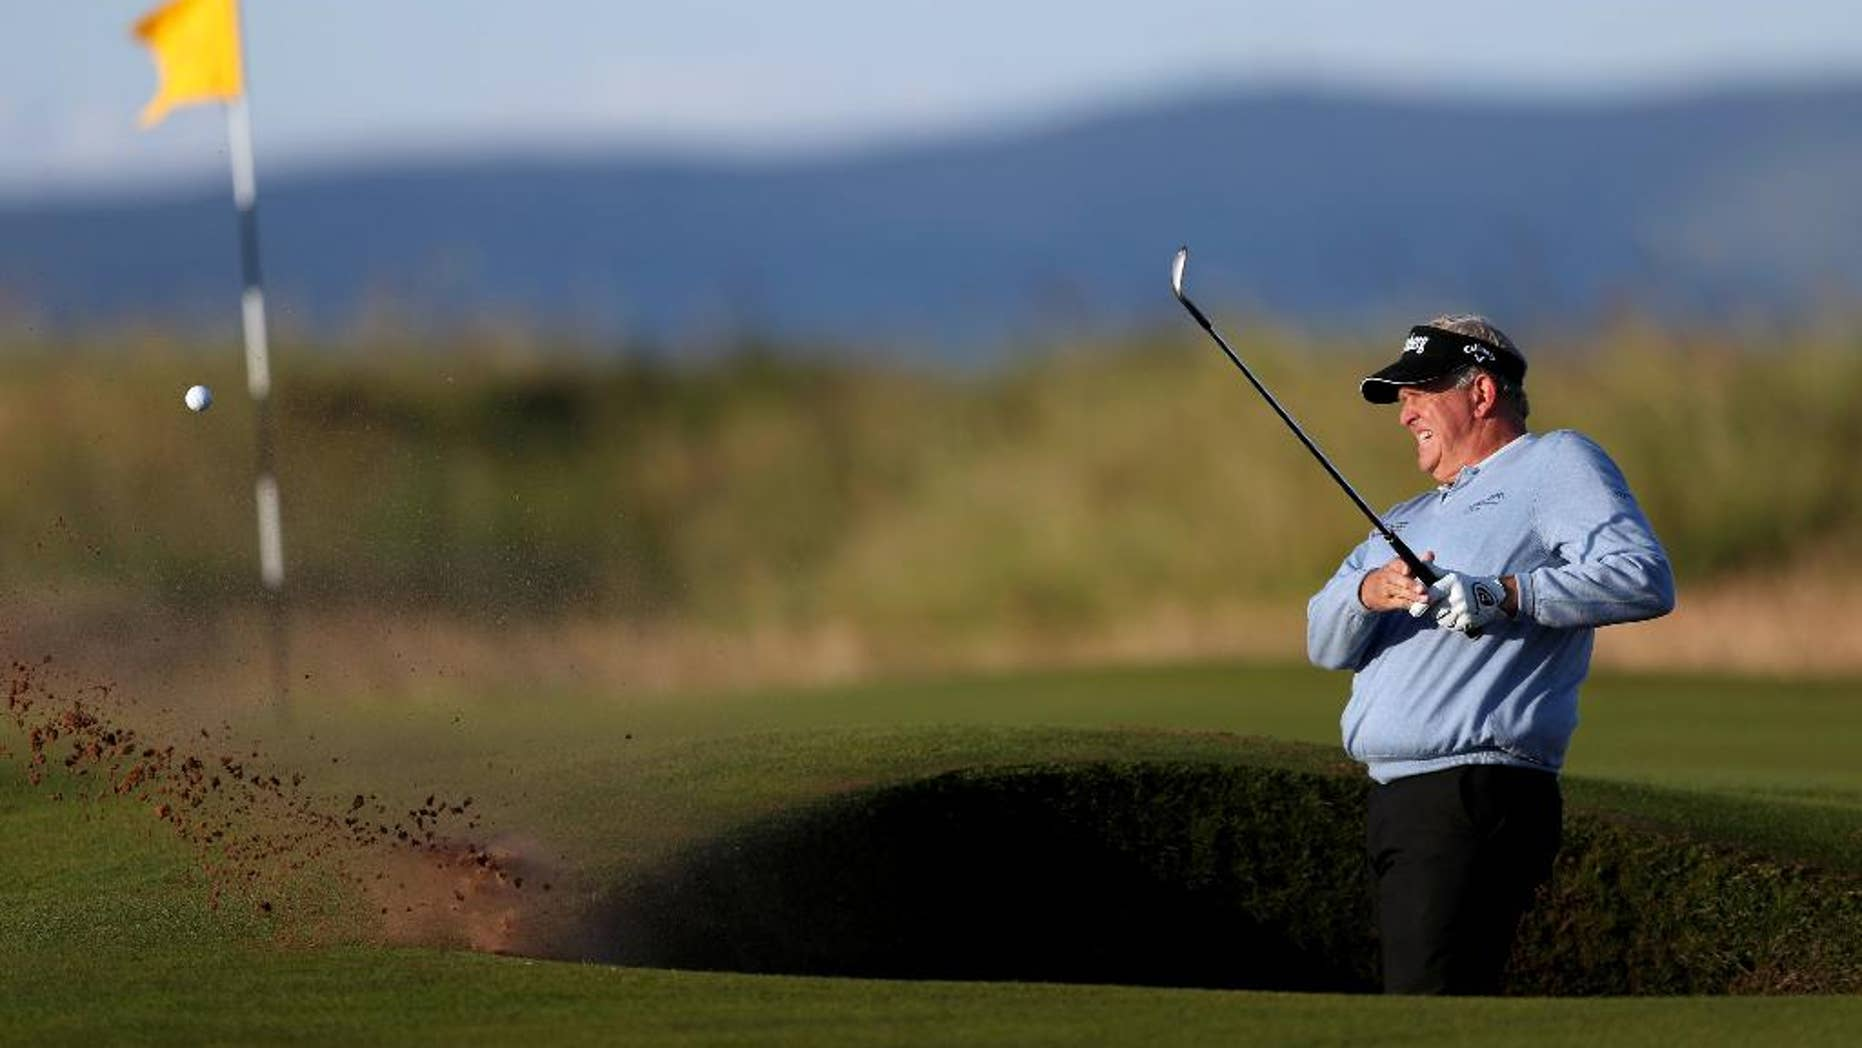 Scotland's Colin Montgomerie plays out of the bunker on the first hole during the first round of the British Open Golf Championship at the Royal Troon Golf Club in Troon, Scotland, Thursday, July 14, 2016. (David Davies/PA via AP)